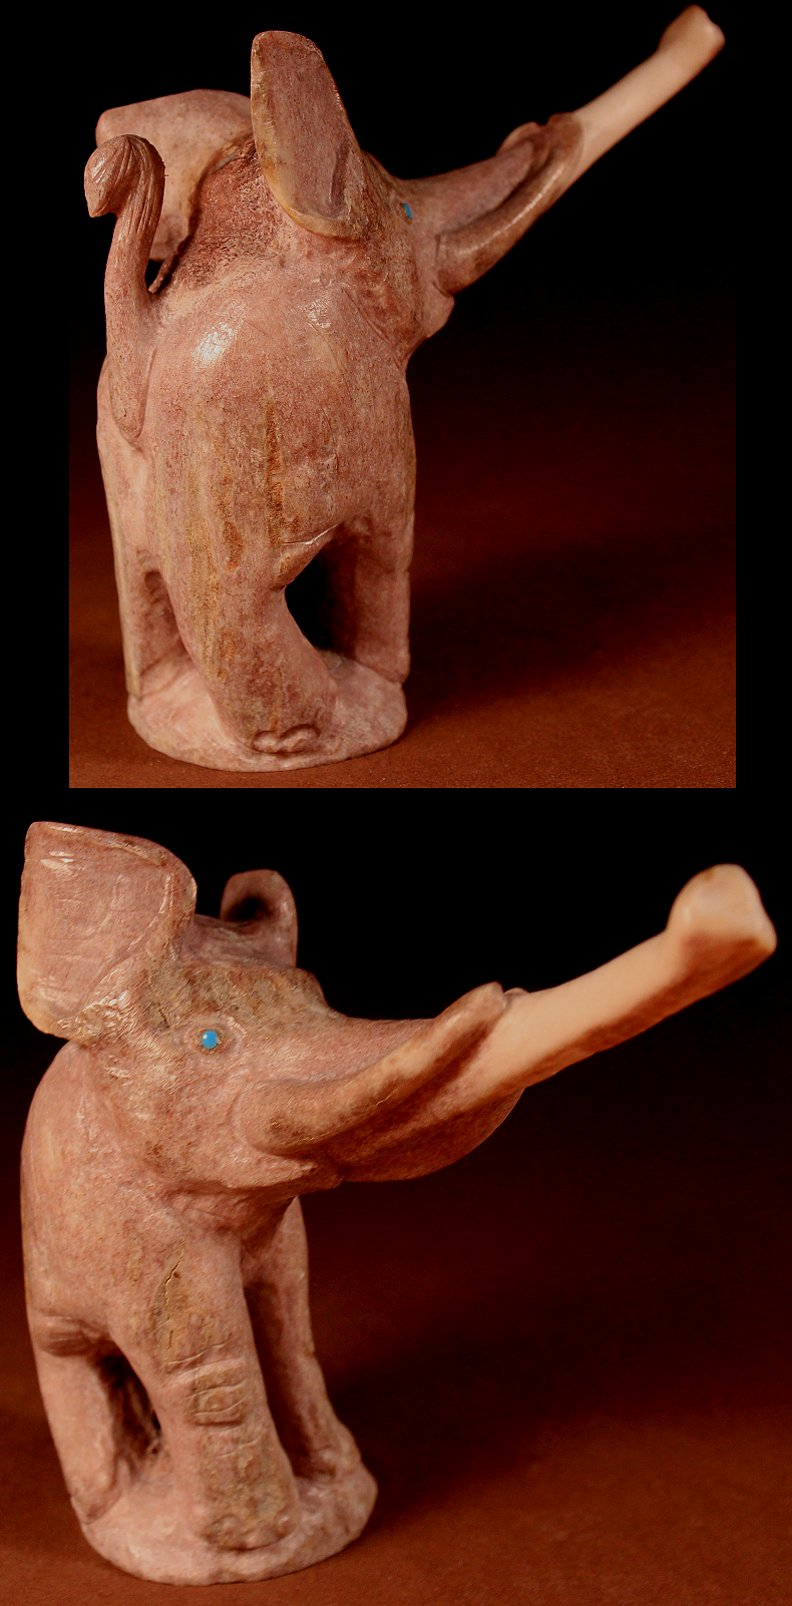 Zuni Spirits is proud to represent a variety of Zuni fetish carvers, including Maxx Laate!